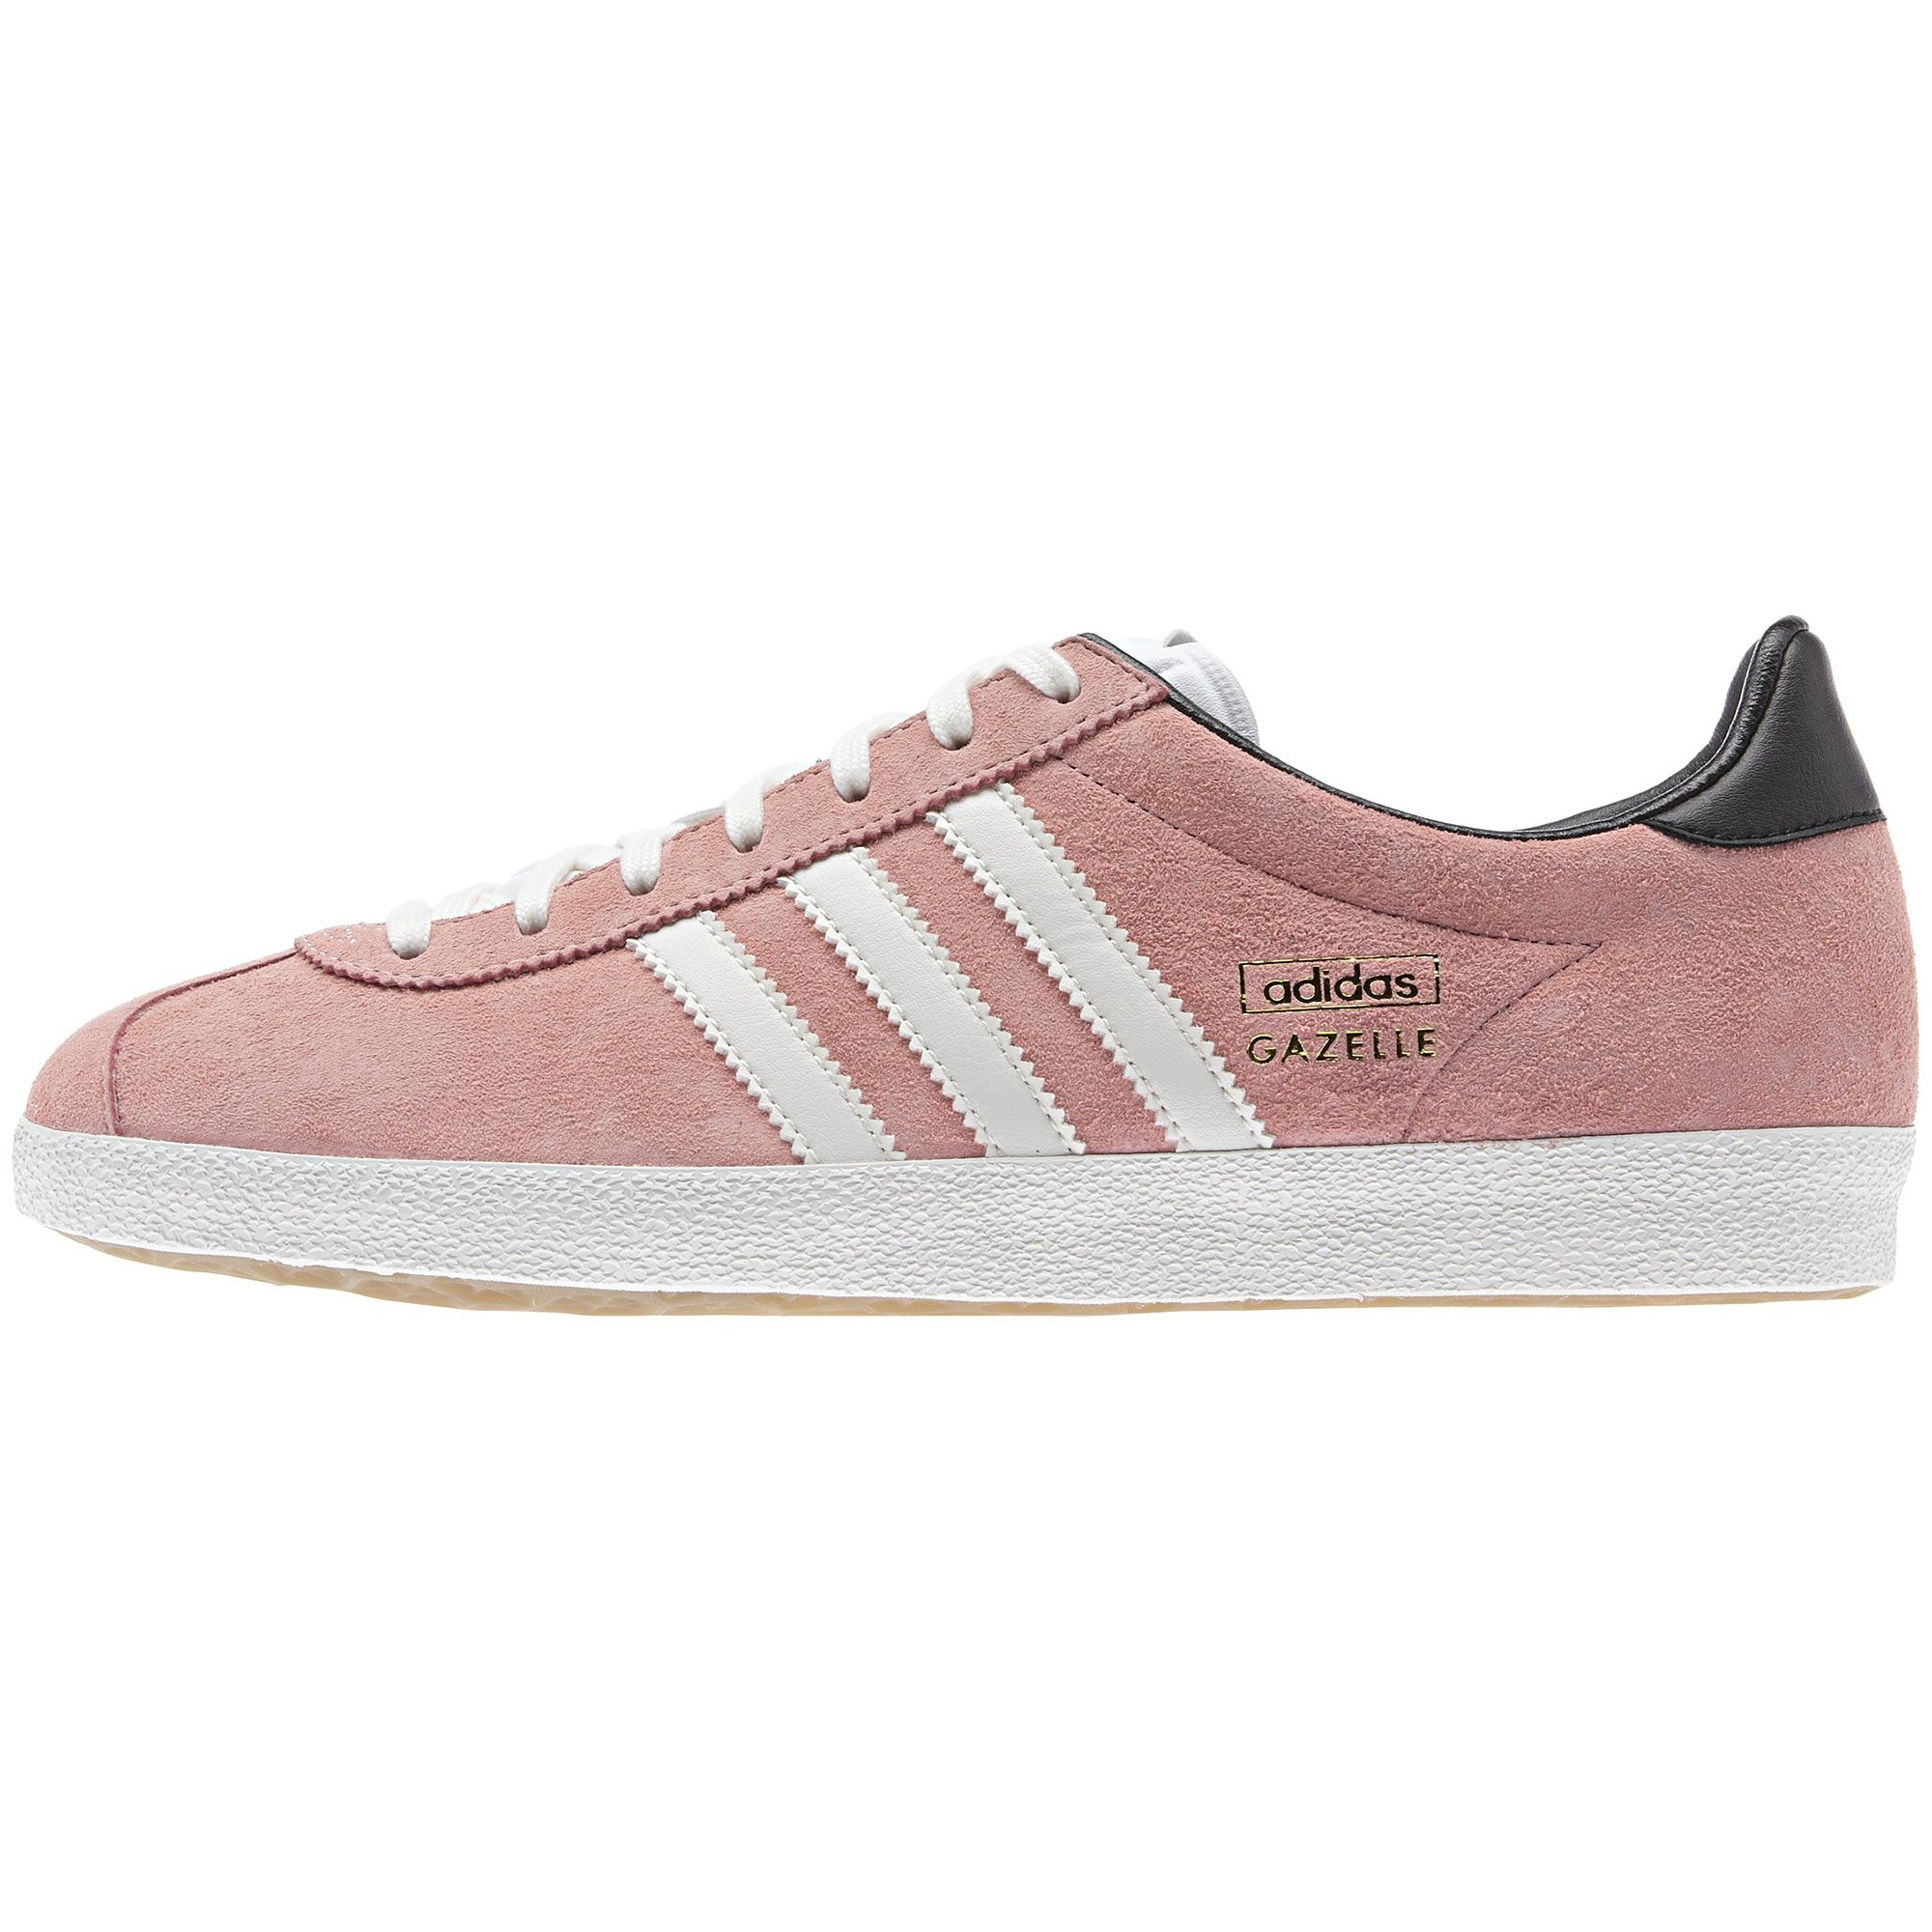 super popular 56ca3 7b905 adidas GAZELLE OG W   adidas Mexico